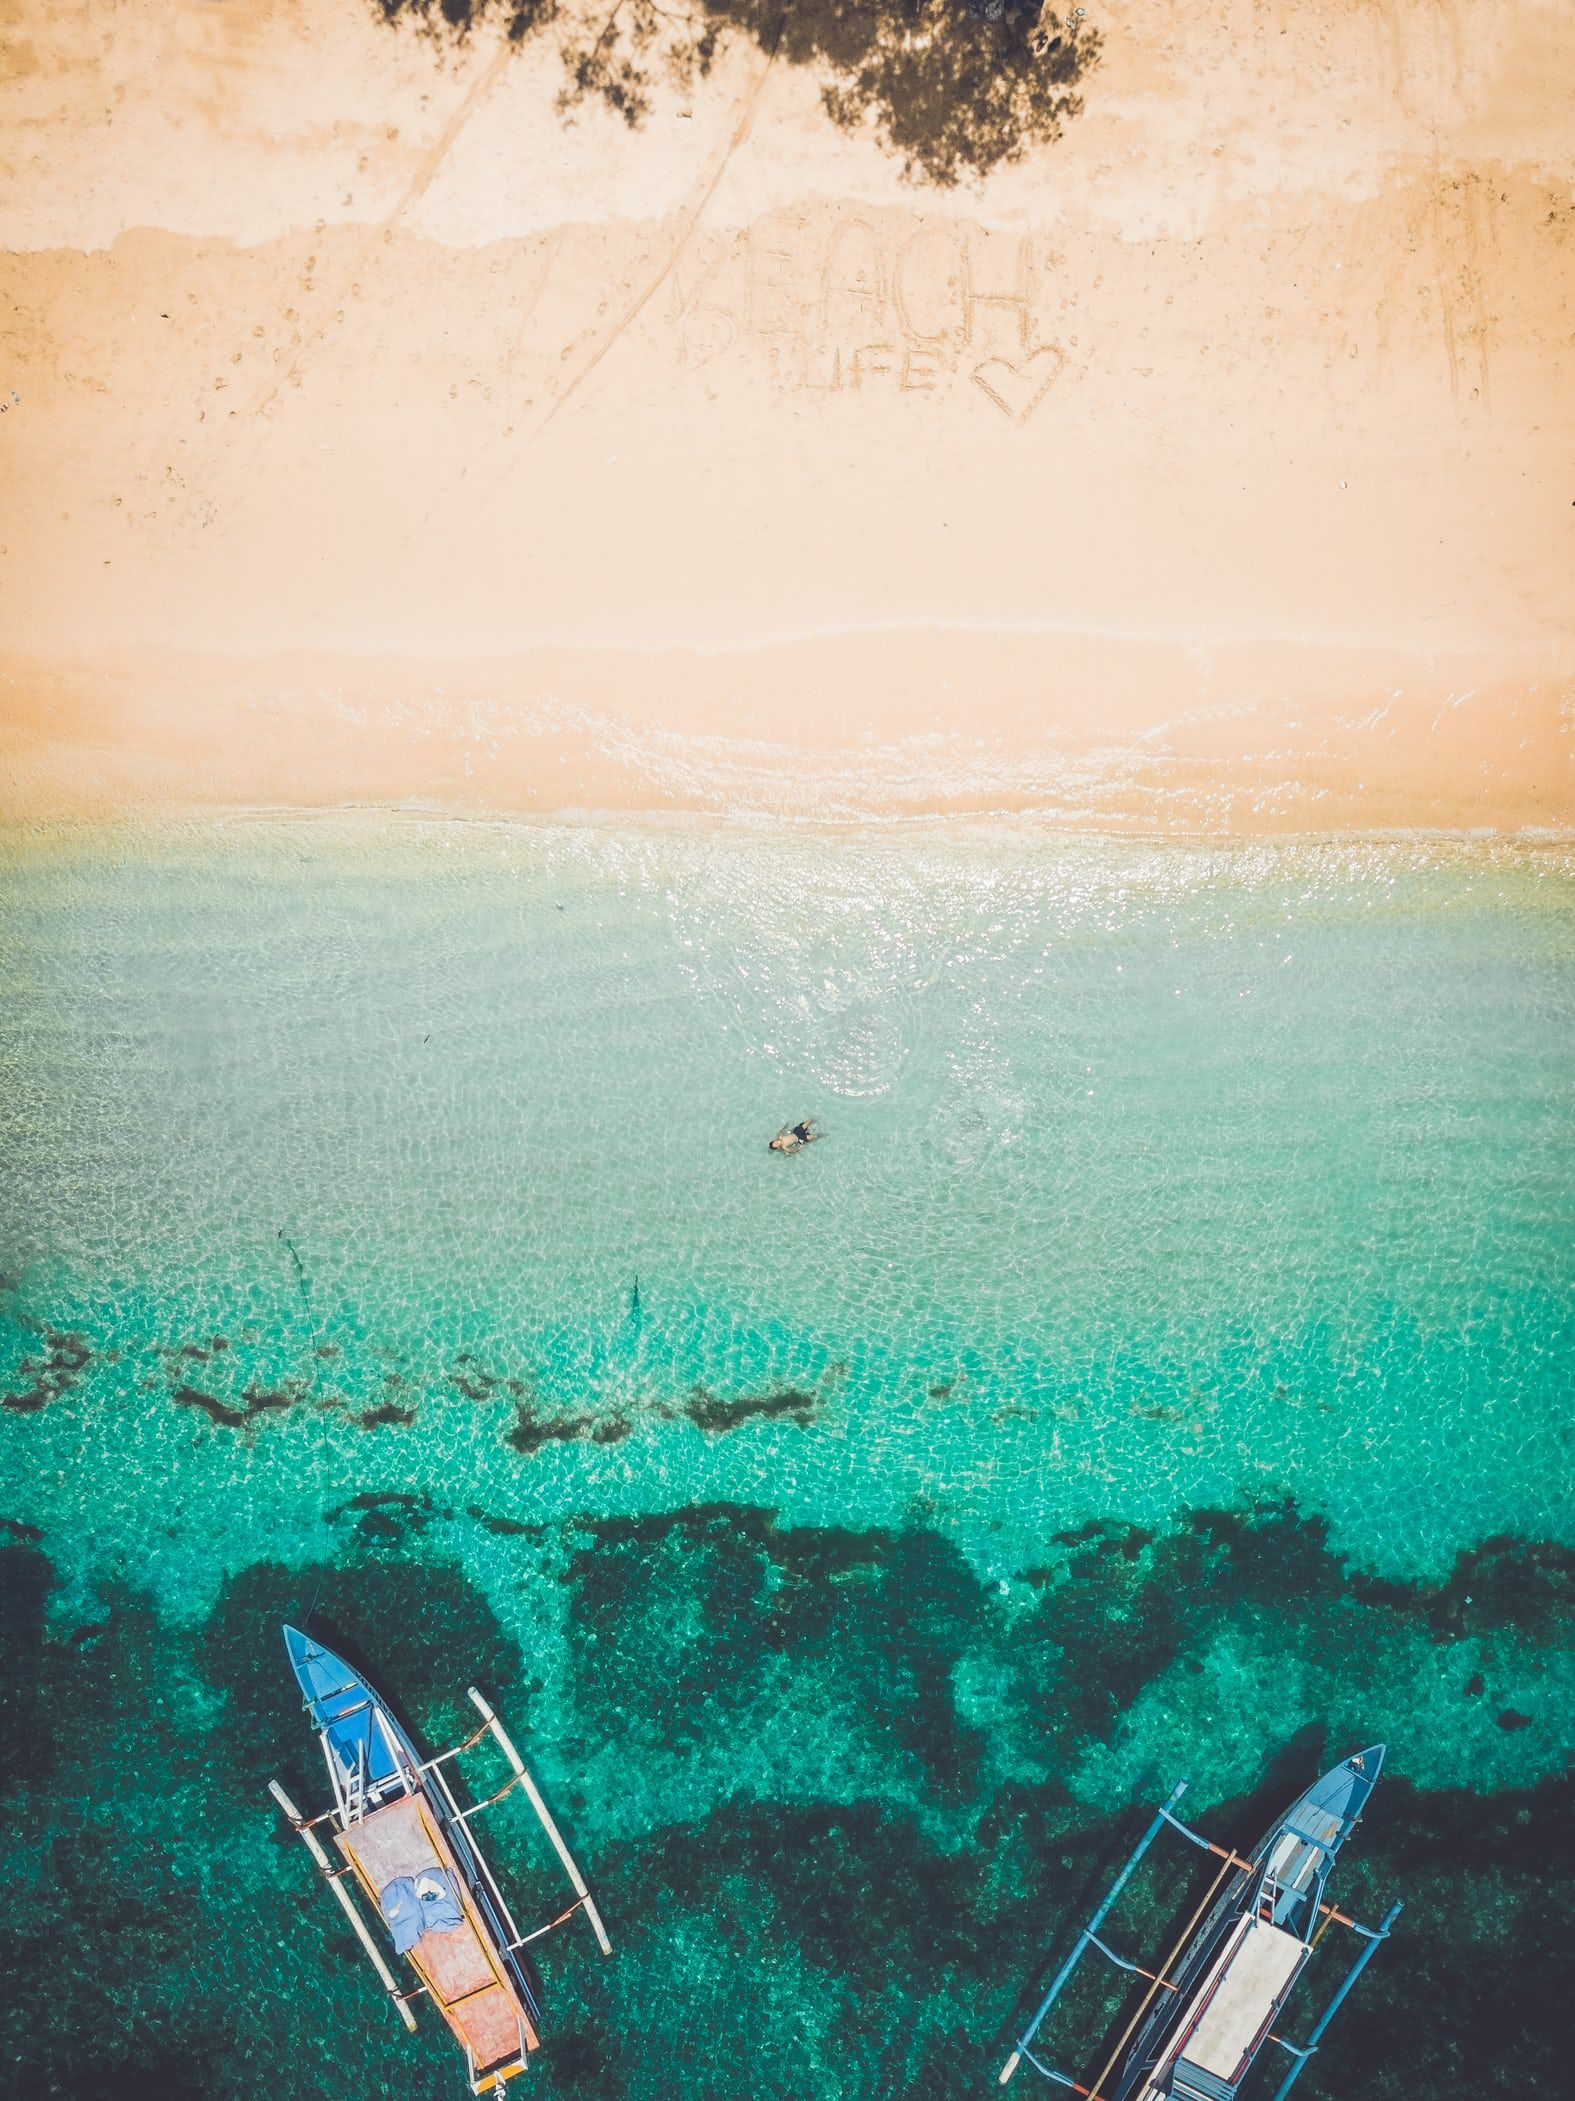 Nature Outdoors Water And River Hd Photo By Josh Spires Drone Nr Drone Nr On Unsplash Aerial Photography Aerial Photo Costa Rica Beaches